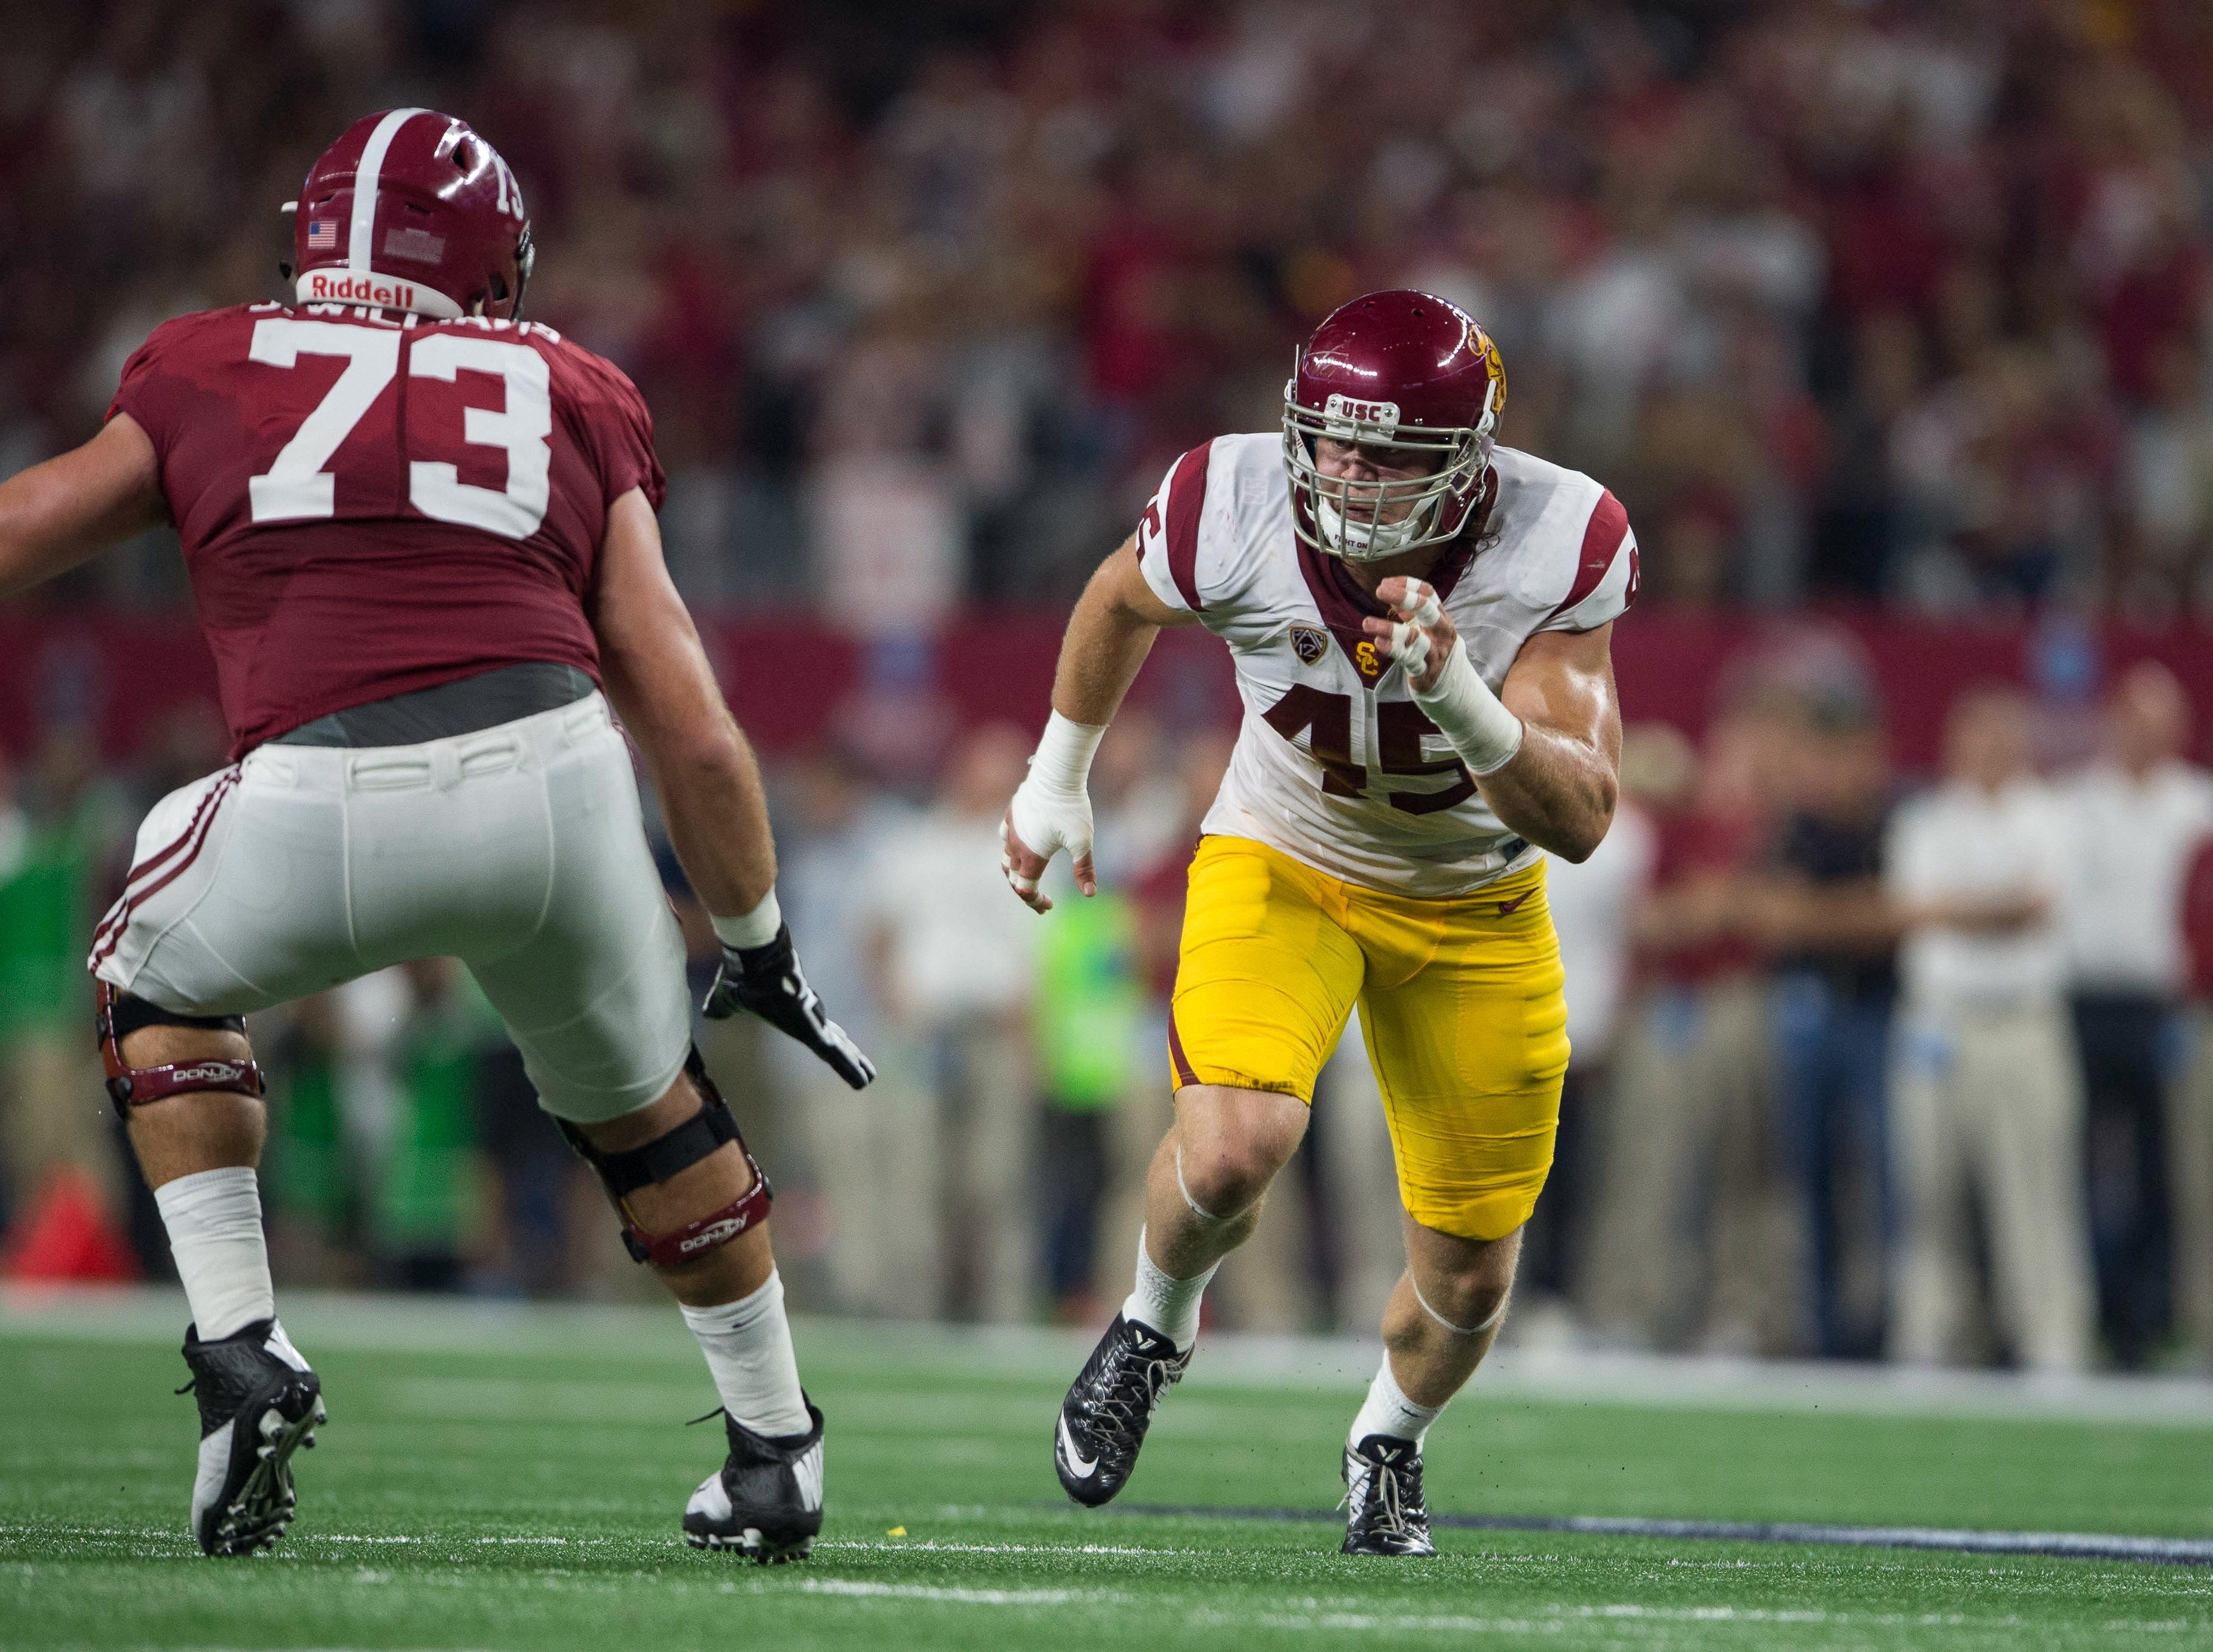 Sep 3, 2016; Arlington, TX, USA; Alabama Crimson Tide offensive lineman Jonah Williams (73) and USC Trojans defensive end Porter Gustin (45) in action during the game at AT&T Stadium. Alabama defeats USC 52-6. Mandatory Credit: Jerome Miron-USA TODAY Sports